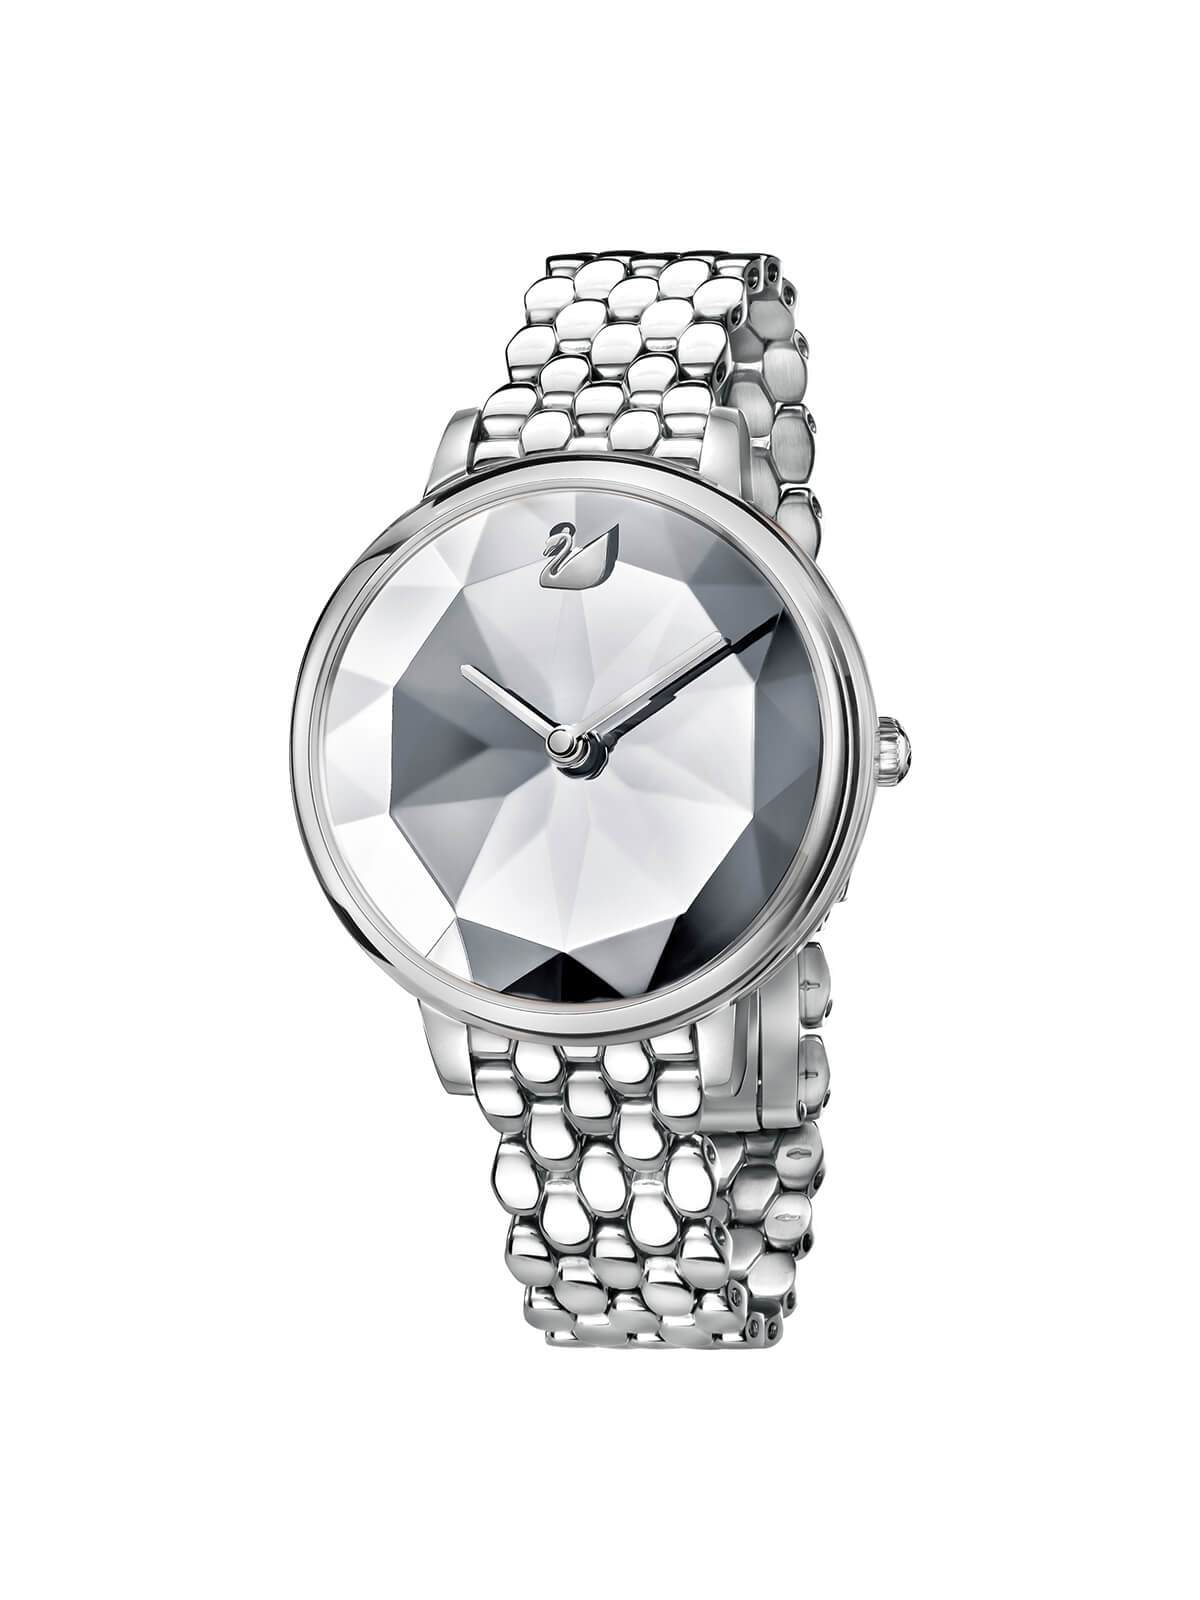 Swarovski Crystal Lake Stainless Steel Watch on Bracelet 5416017